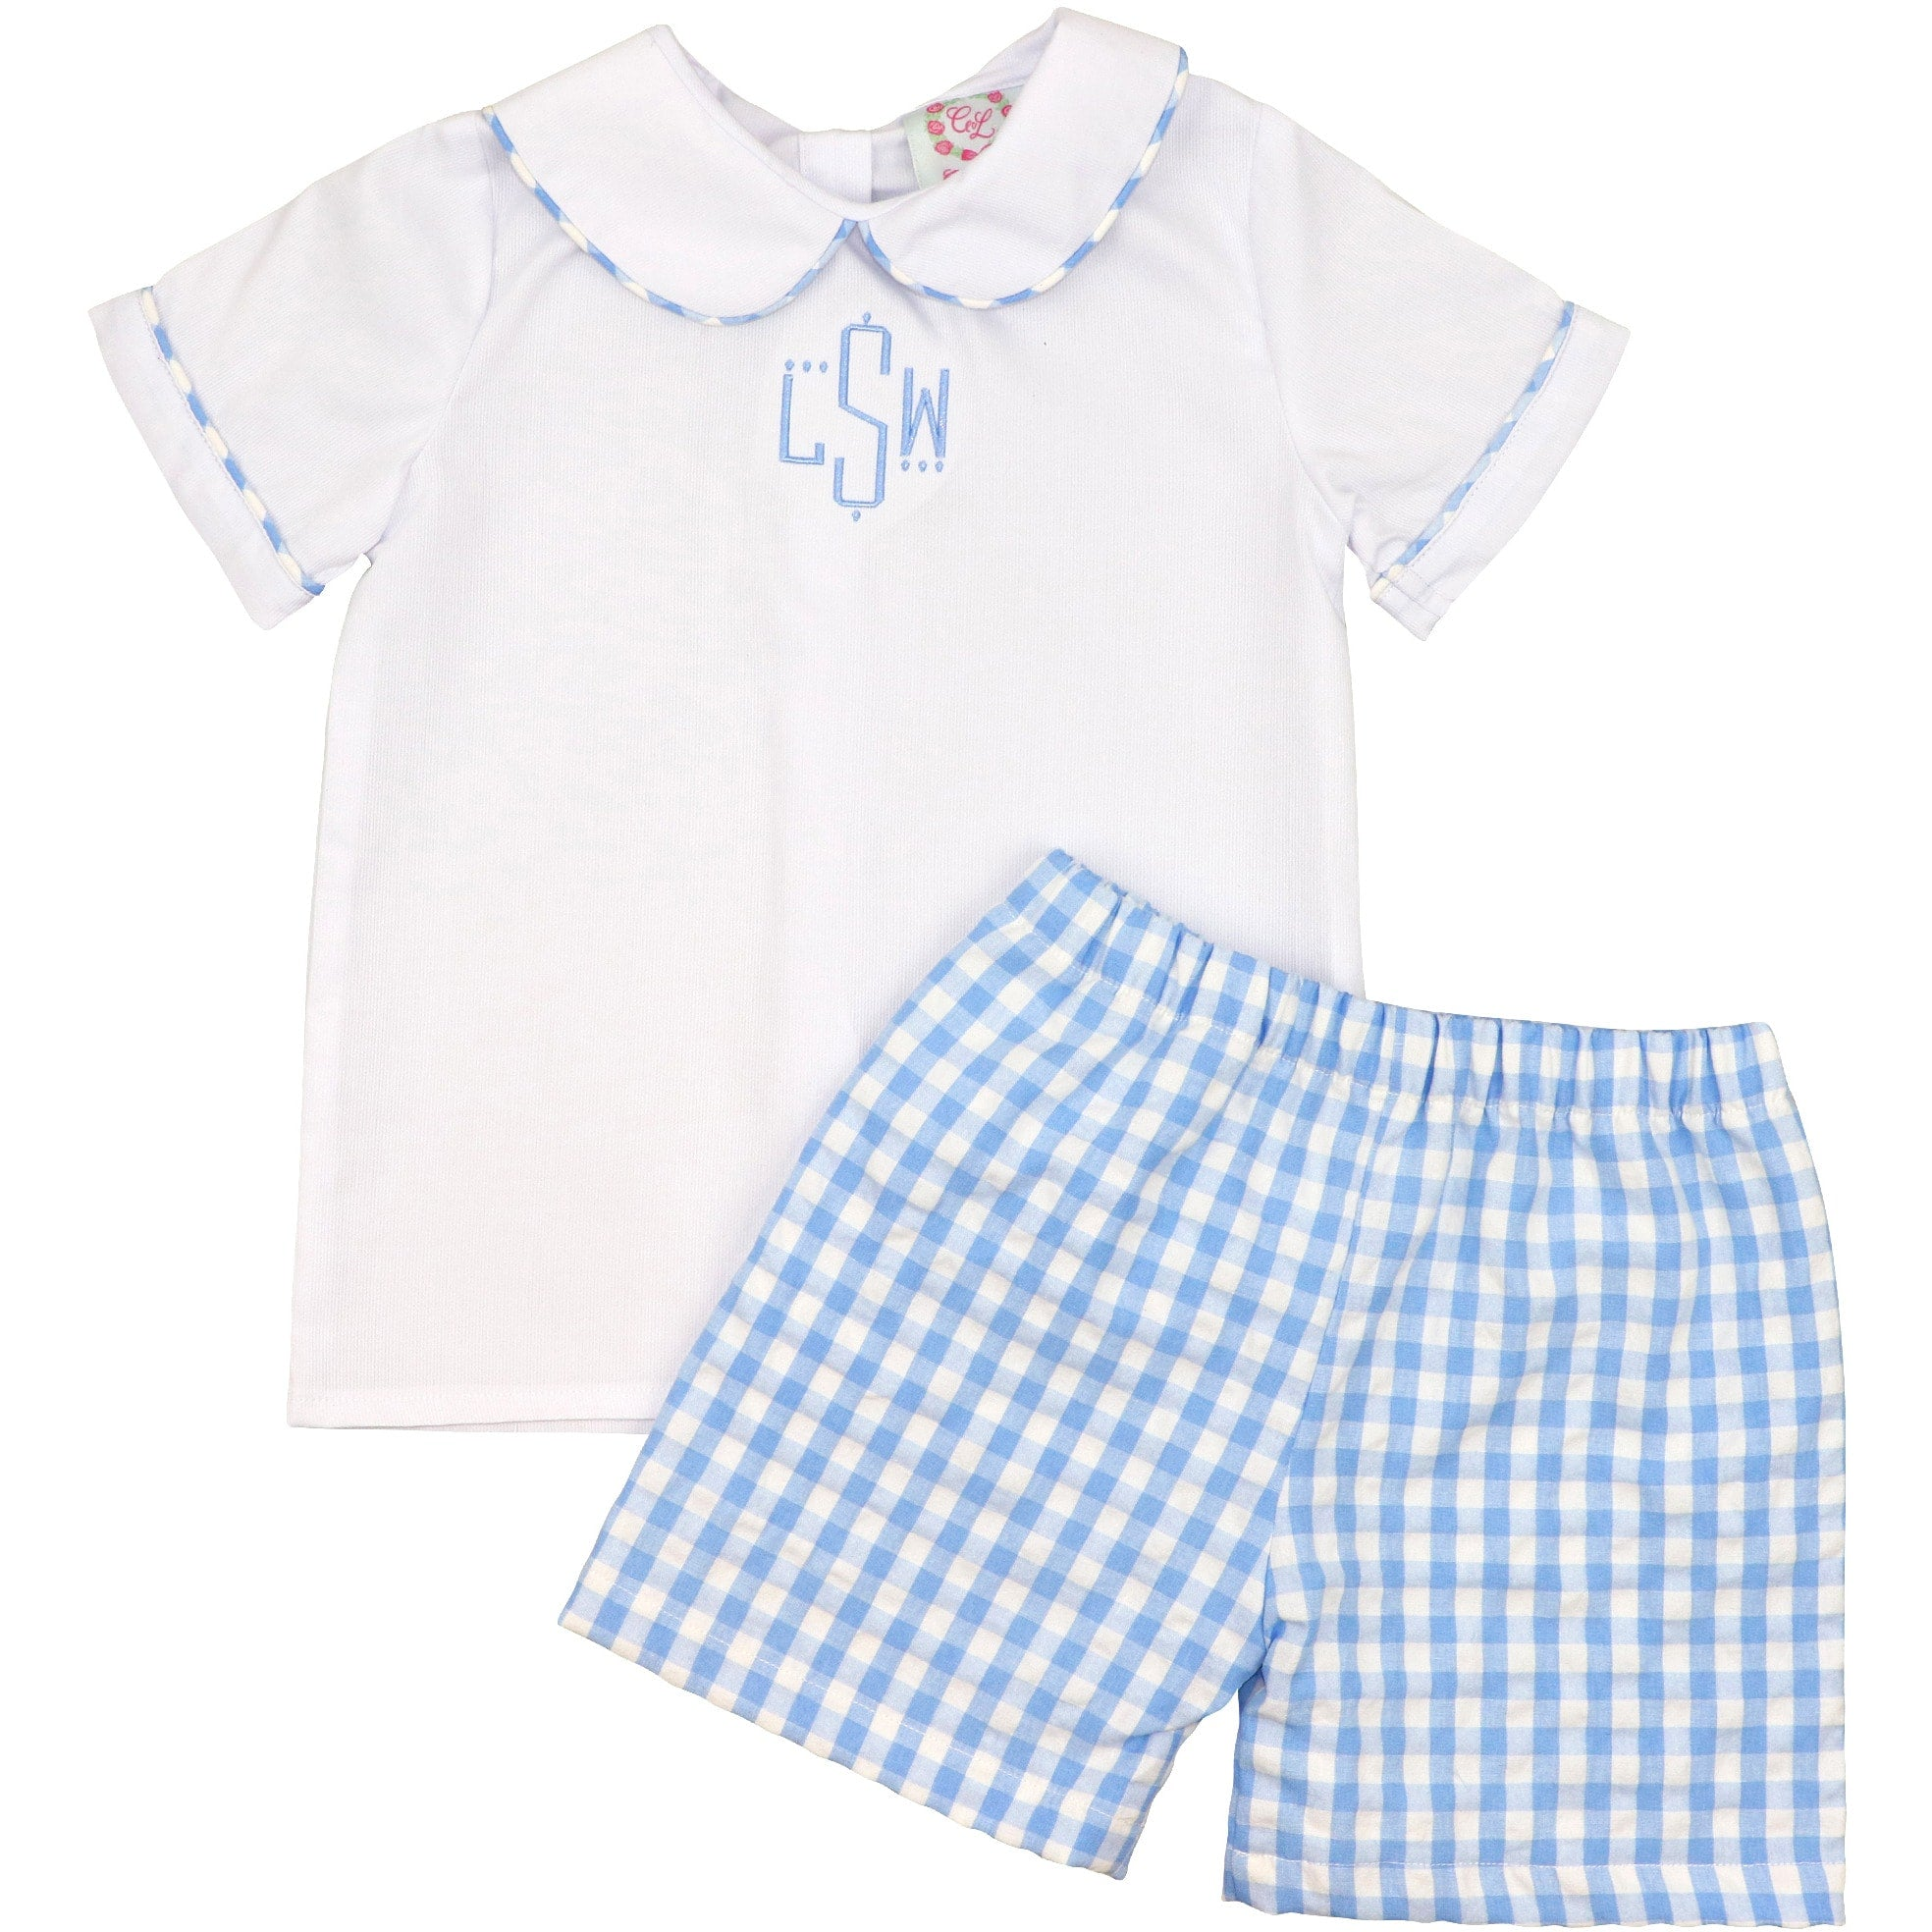 Blue Check Peter Pan Collar Short Set